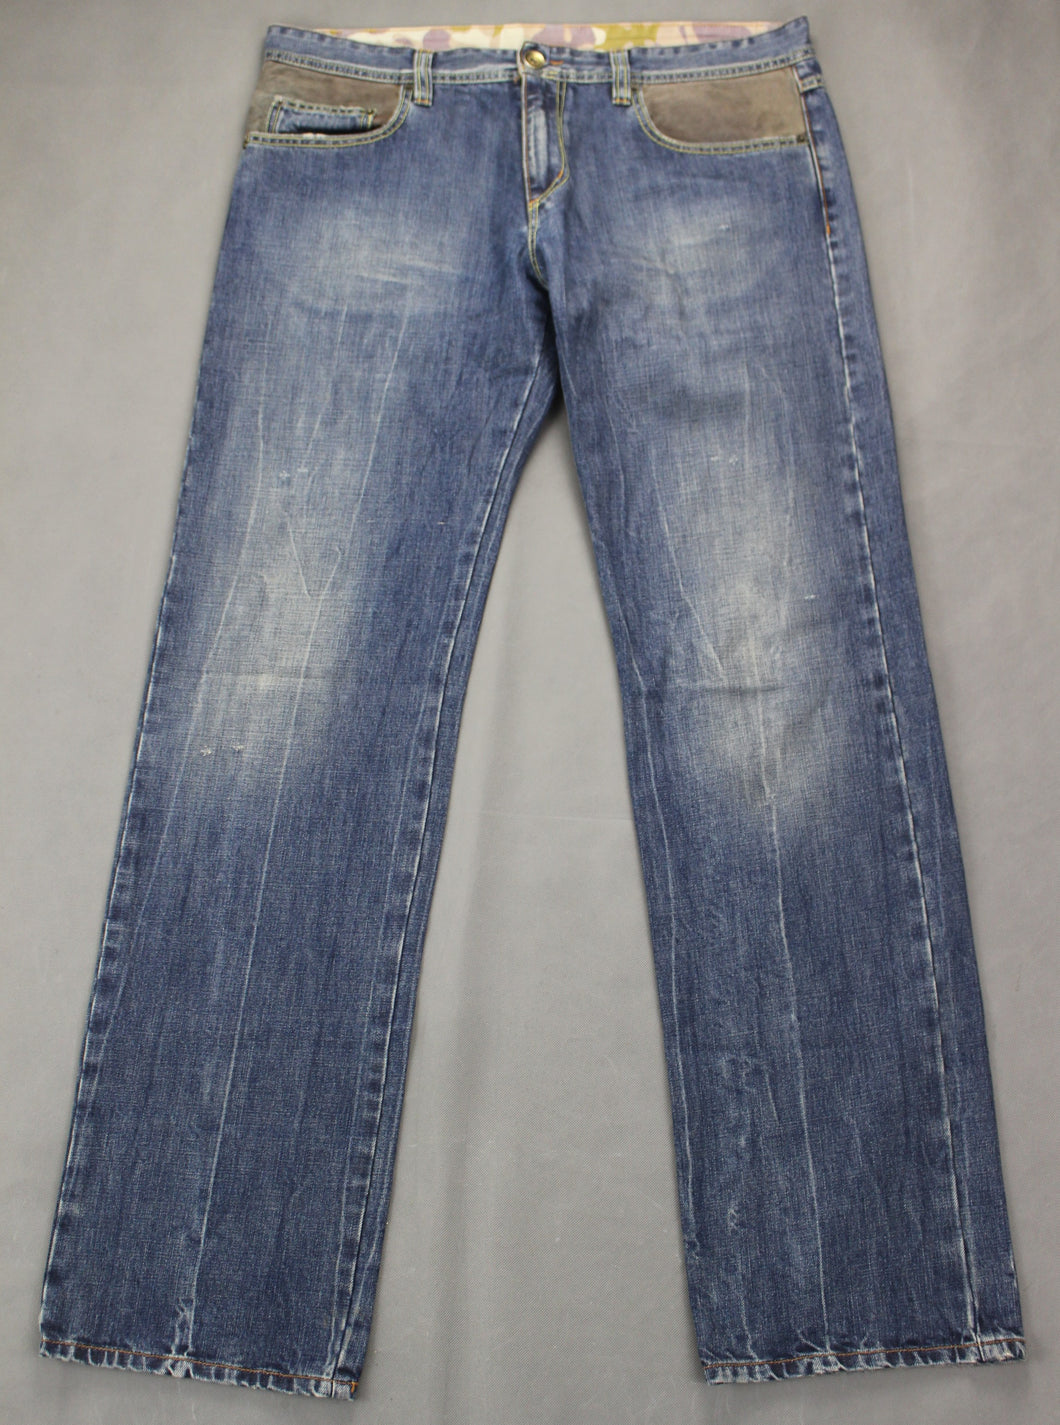 MOSCHINO Mens Blue Denim Leather Trim Classic Fit JEANS Size Waist 36